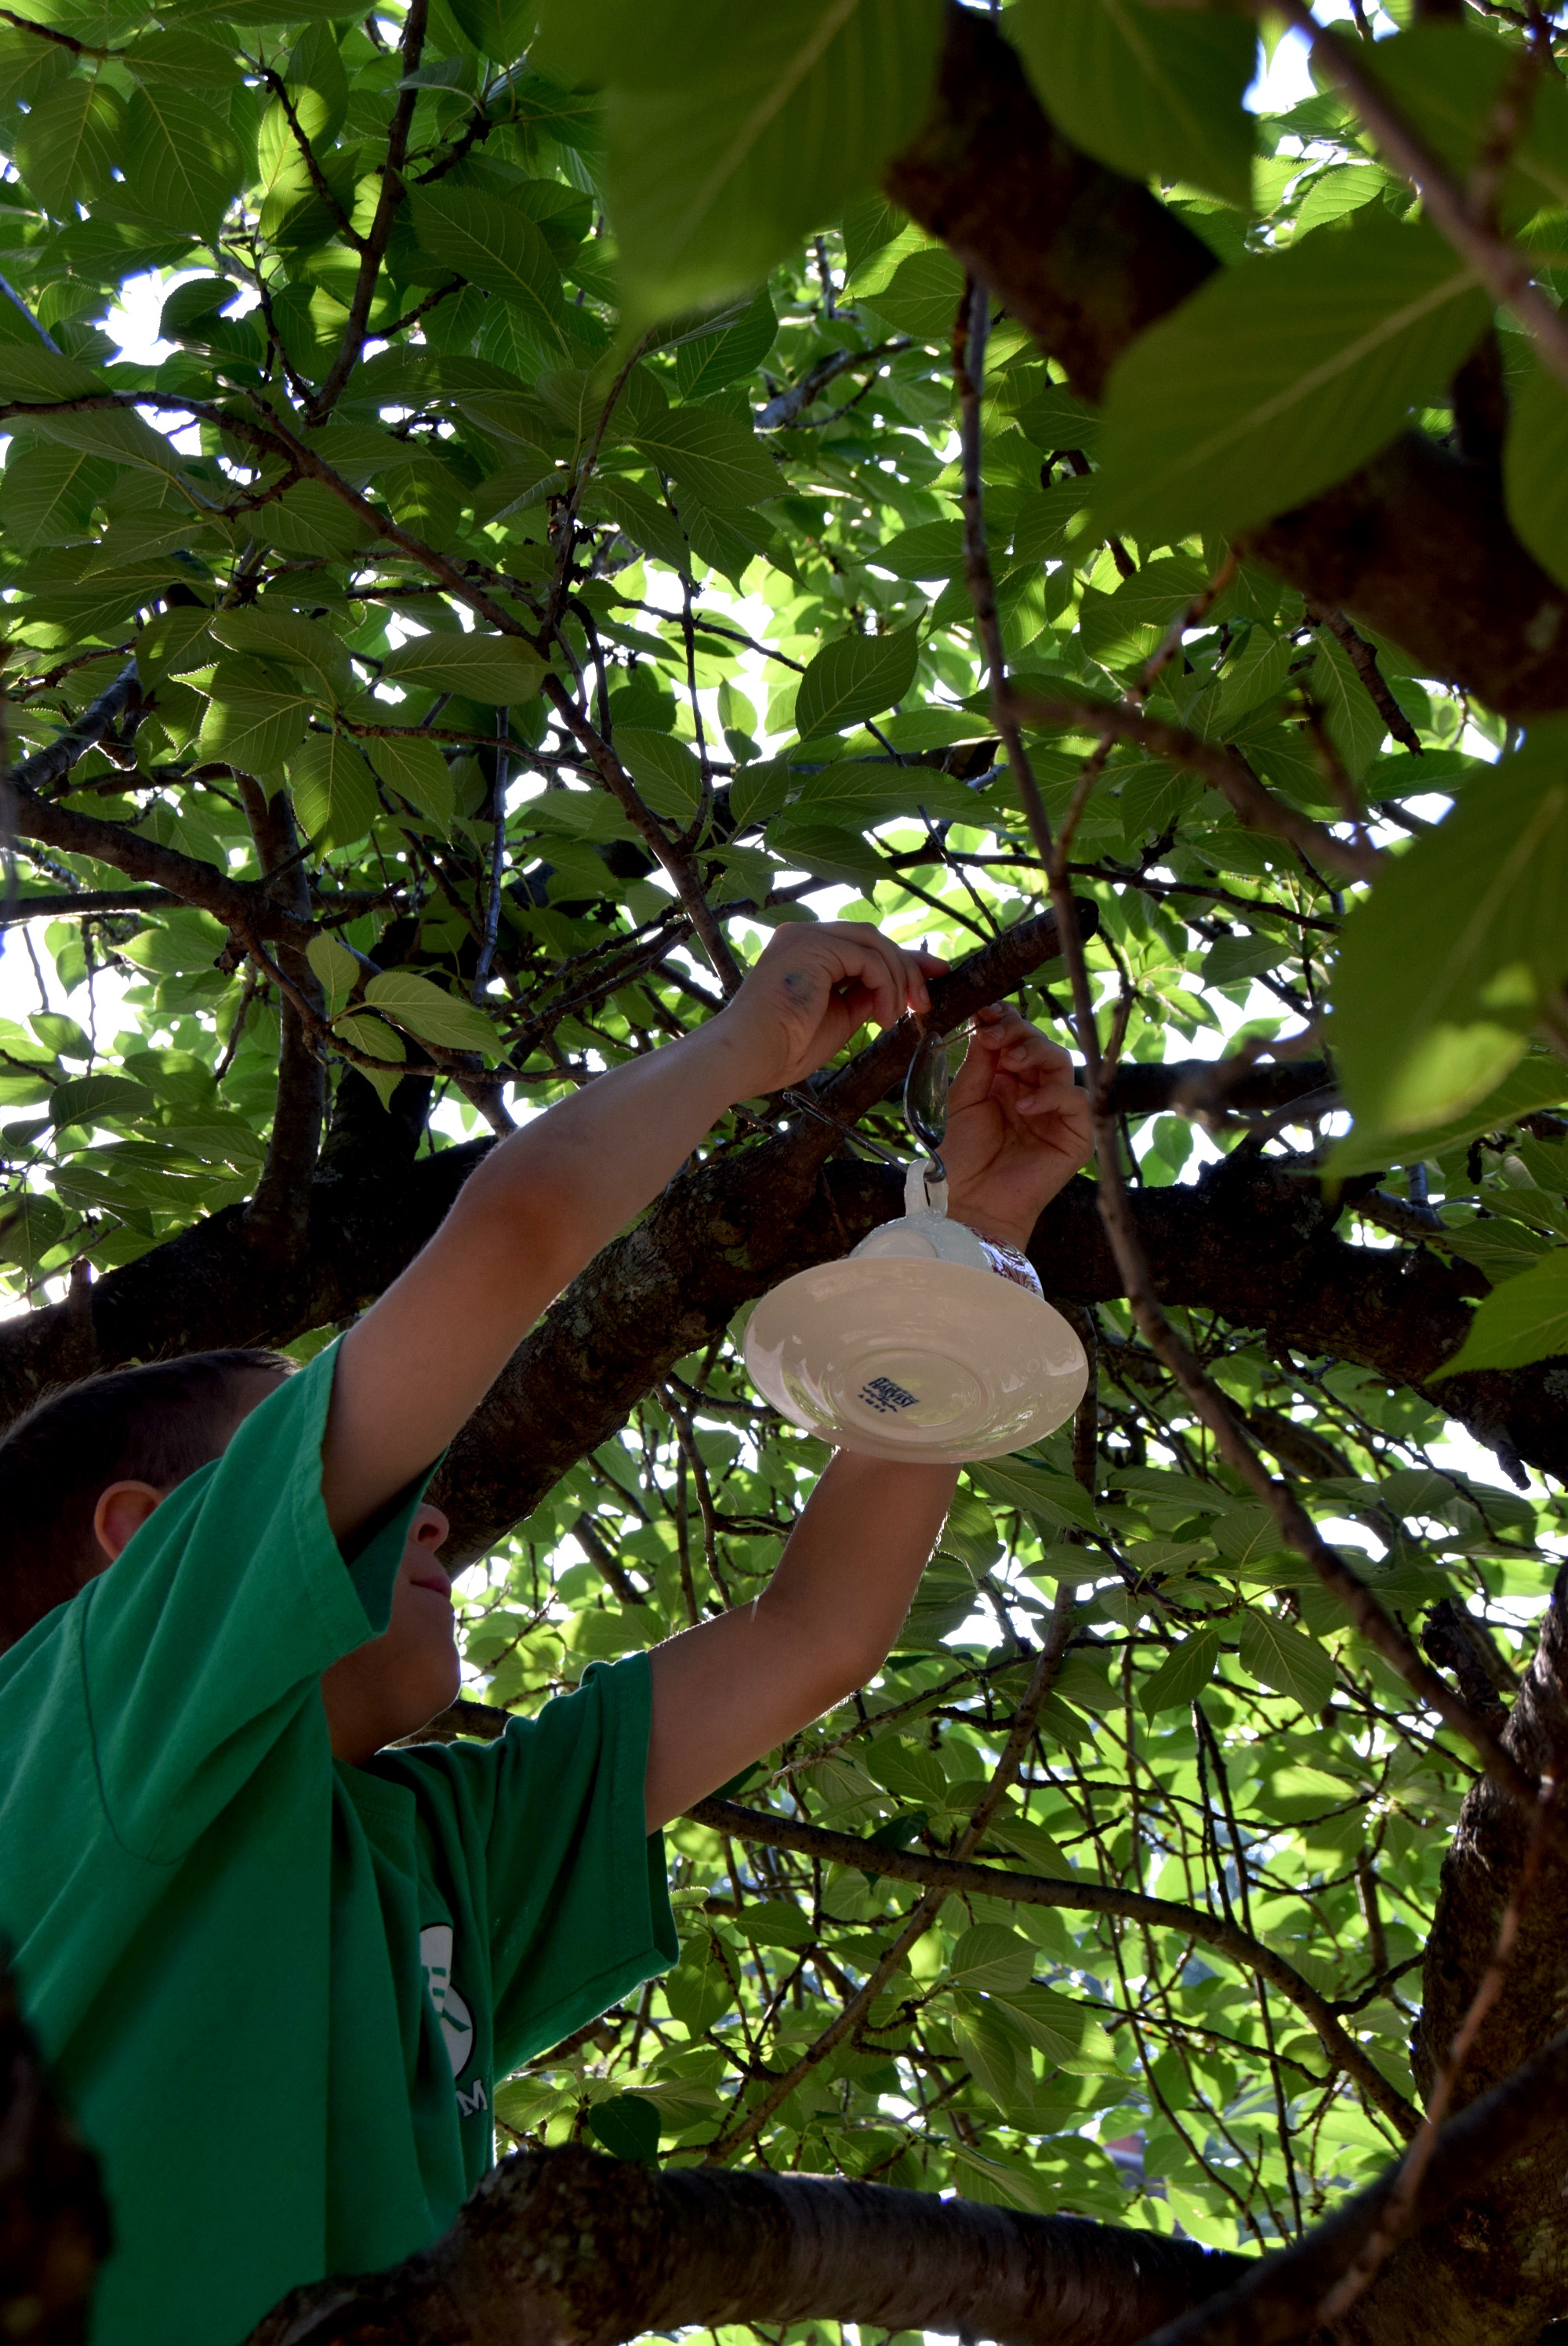 hanging the finished bird feeder from a tree